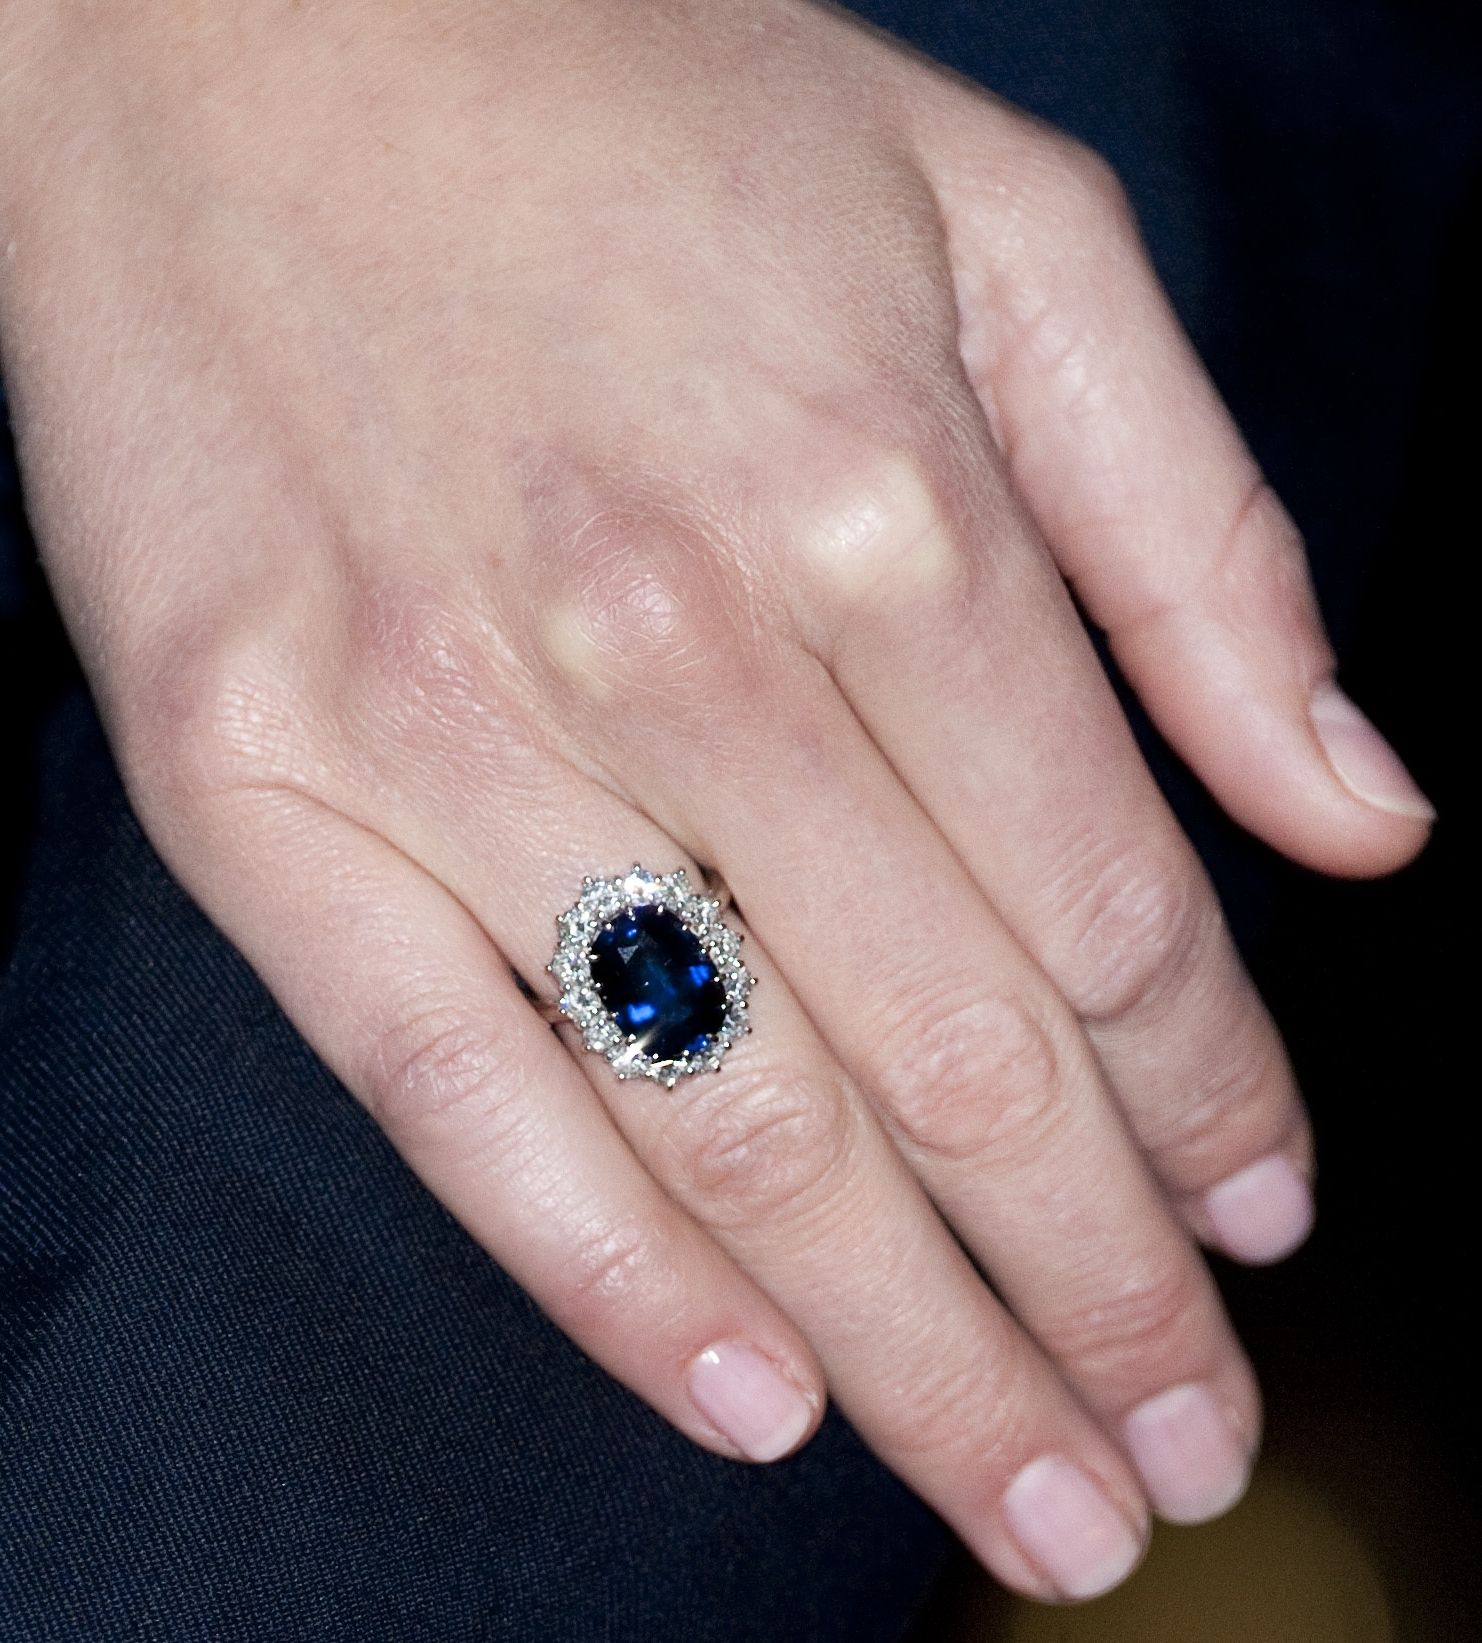 rings celebrities inspired i engagement ring top loudest index the do sapphire that carat kate